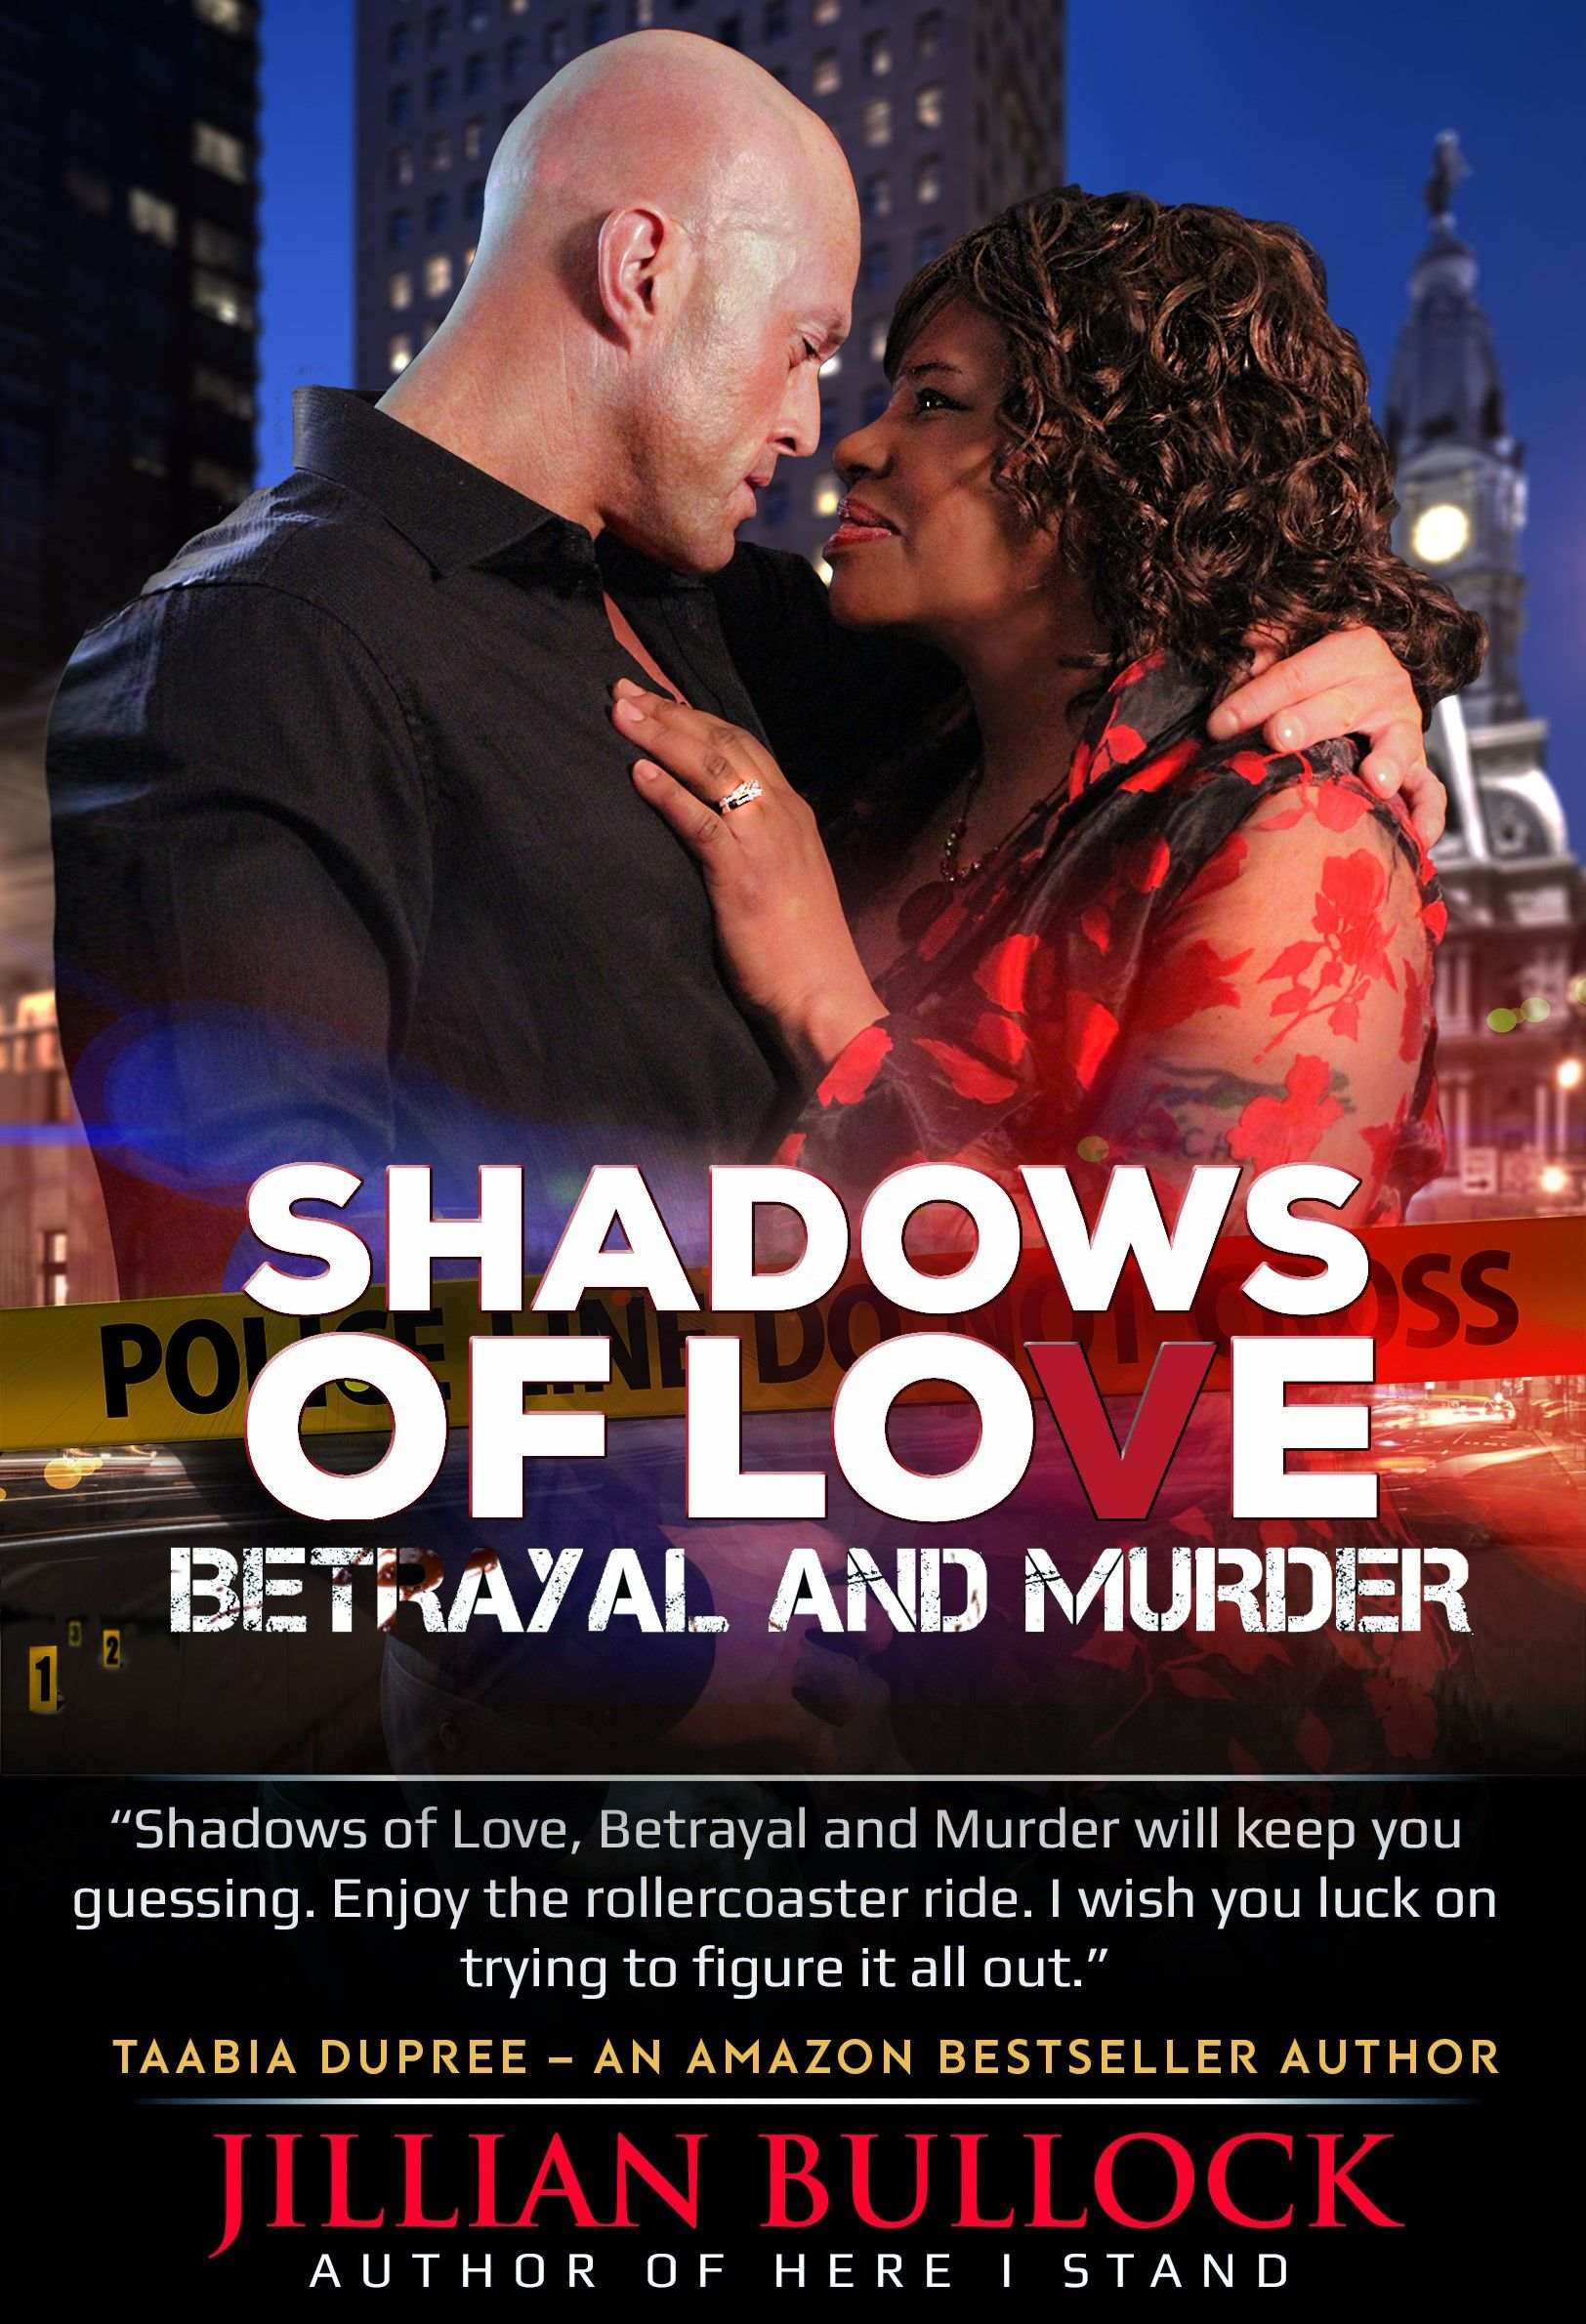 Actor & Model John Joseph Quinlan & Director Jillian Bullock Shadows of Love Book Cover #JohnQuinlan #JillianBullock